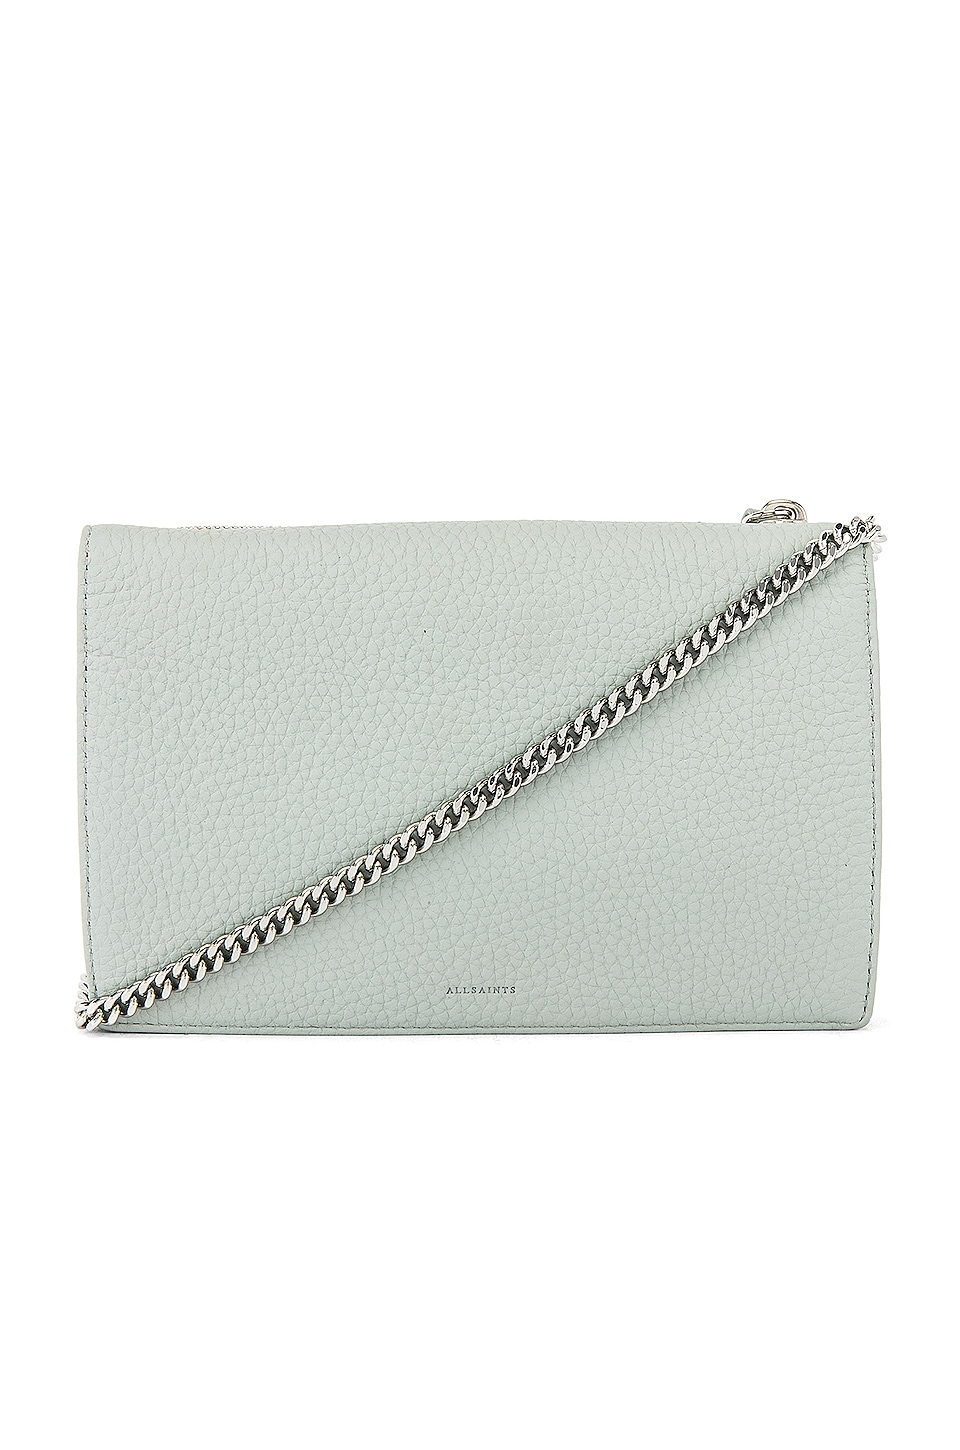 ALLSAINTS Fetch Chain Wallet in Sky Blue